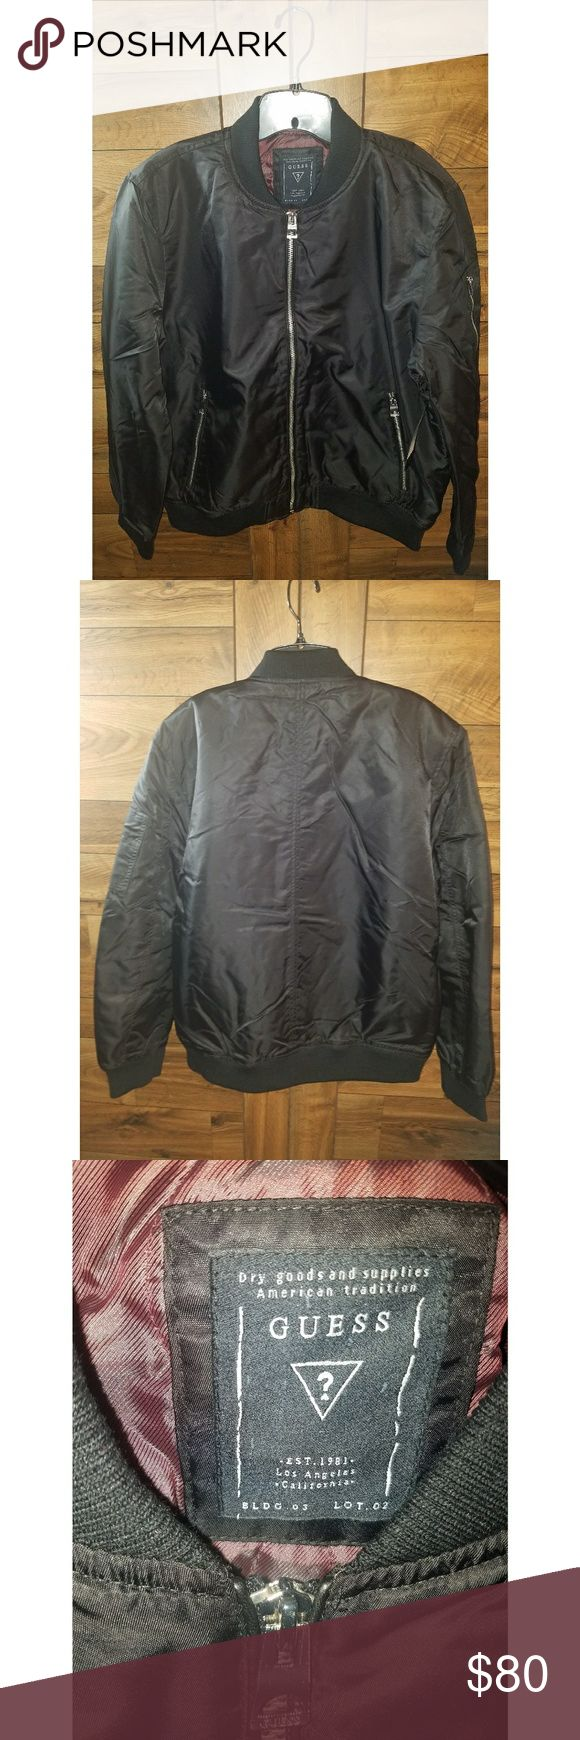 NEW Guess Men's Size XL Black Harvey Bomber Jacket Nylon bomber jacket with quilted lining, faux-leather piping and high-shine hardware.  Shell: 100% Nylon. Lining and filling: 100% Polyester.Machine wash  This is currently sold out online.  I BUNDLE! Check out my other listings 😉 Guess Jackets & Coats Bomber & Varsity